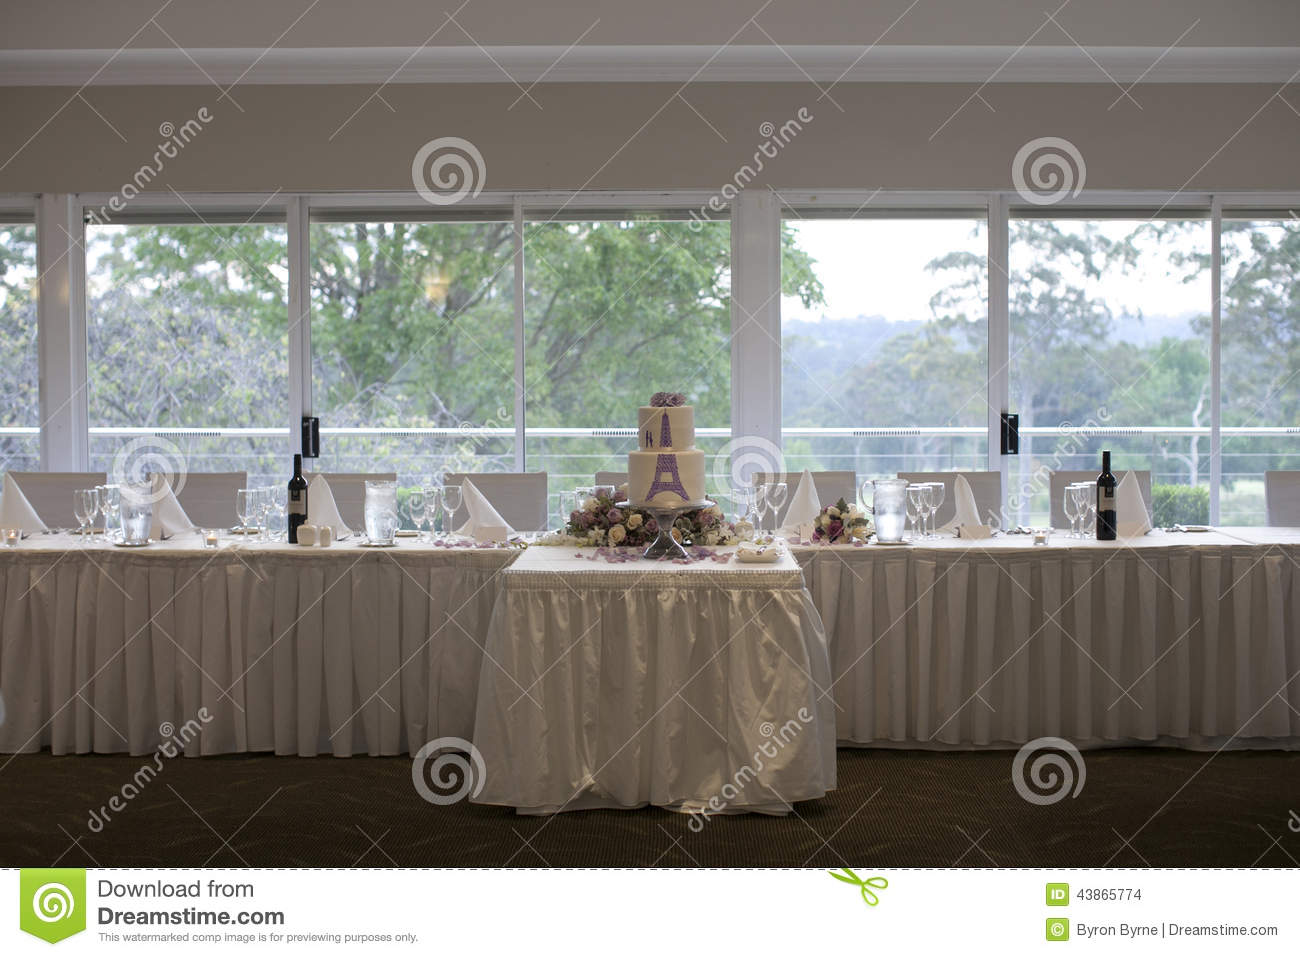 Royalty Free Stock Photo Download Bridal Table And Wedding Cake Reception Set Up